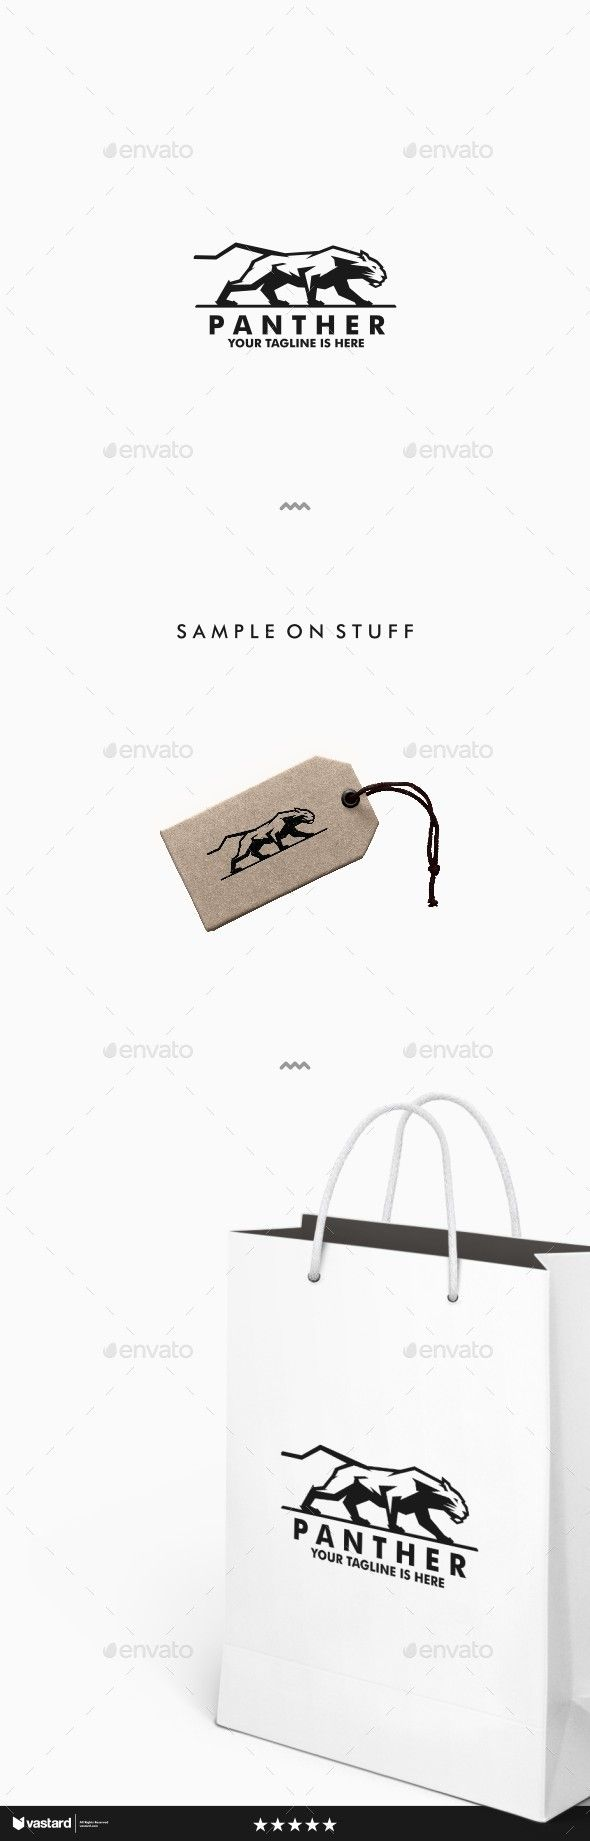 Panther  Logo Design Template Vector #logotype Download it here: http://graphicriver.net/item/panther-logo/15653673?s_rank=917?ref=nexion